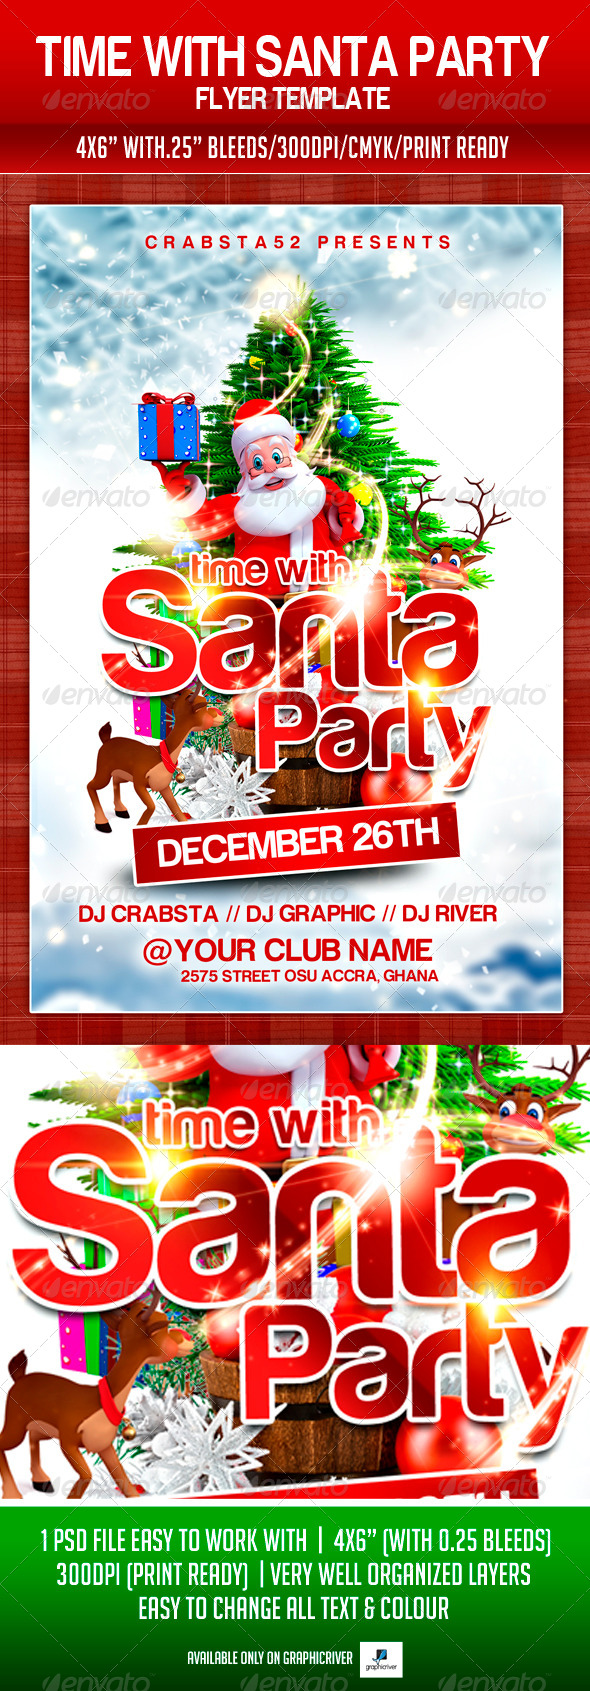 Time With Santa Party Flyer Template - Flyers Print Templates